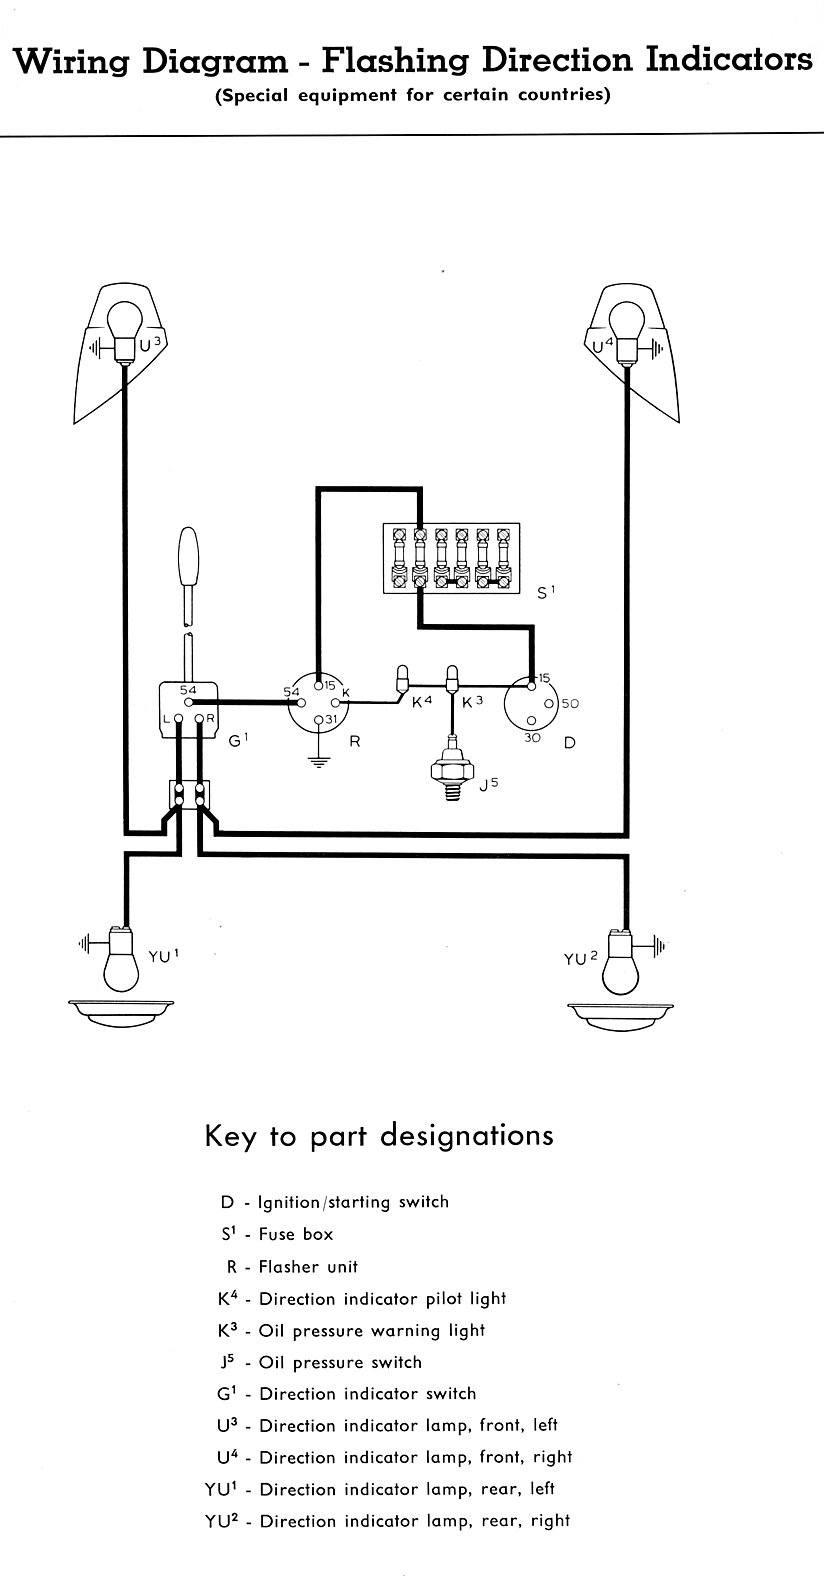 thesamba.com :: type 2 wiring diagrams single pole light switch wiring diagram pressure warning light switch wiring diagram